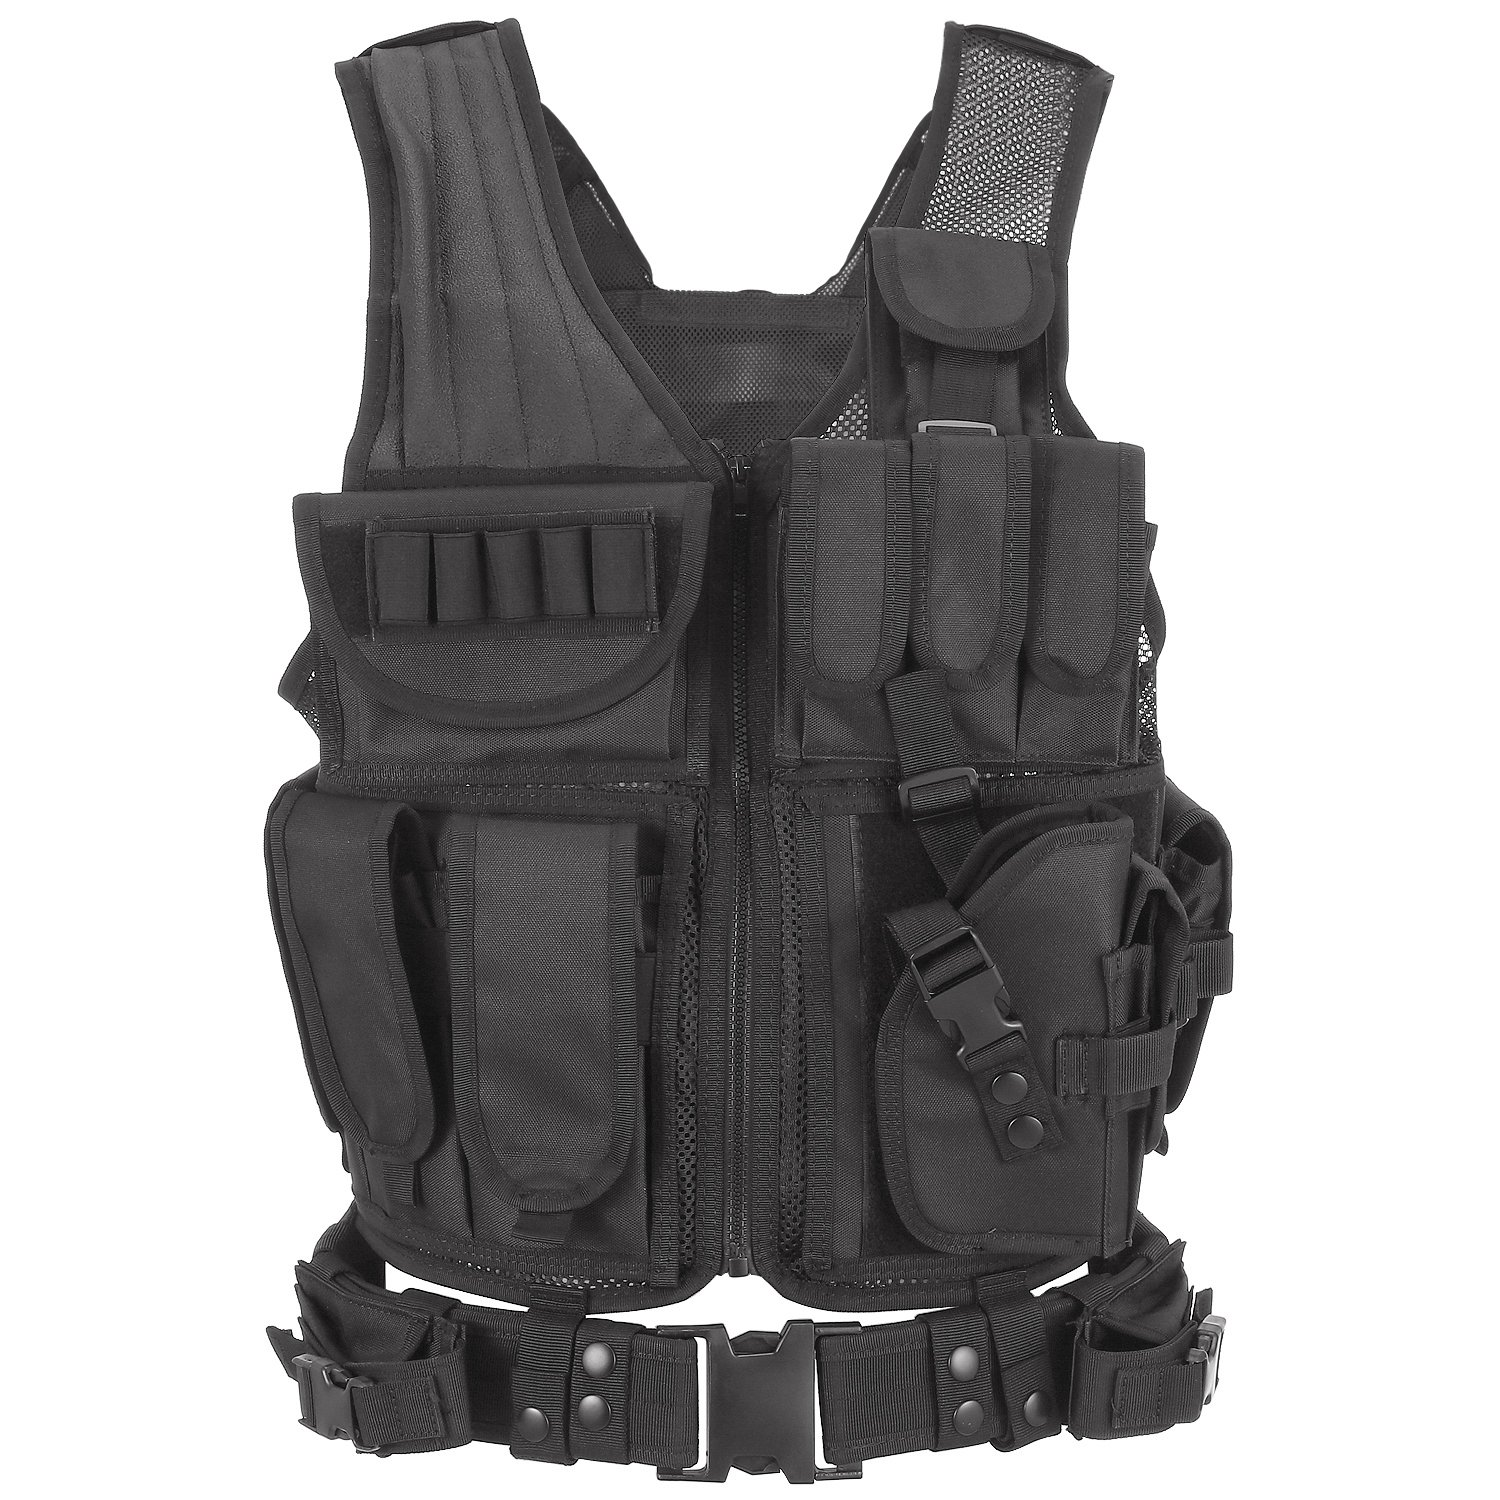 Tactical Airsoft Barbarians Molle Military Adjustable Paintball Vest Swat Assault Lightweight dBeQCorxW